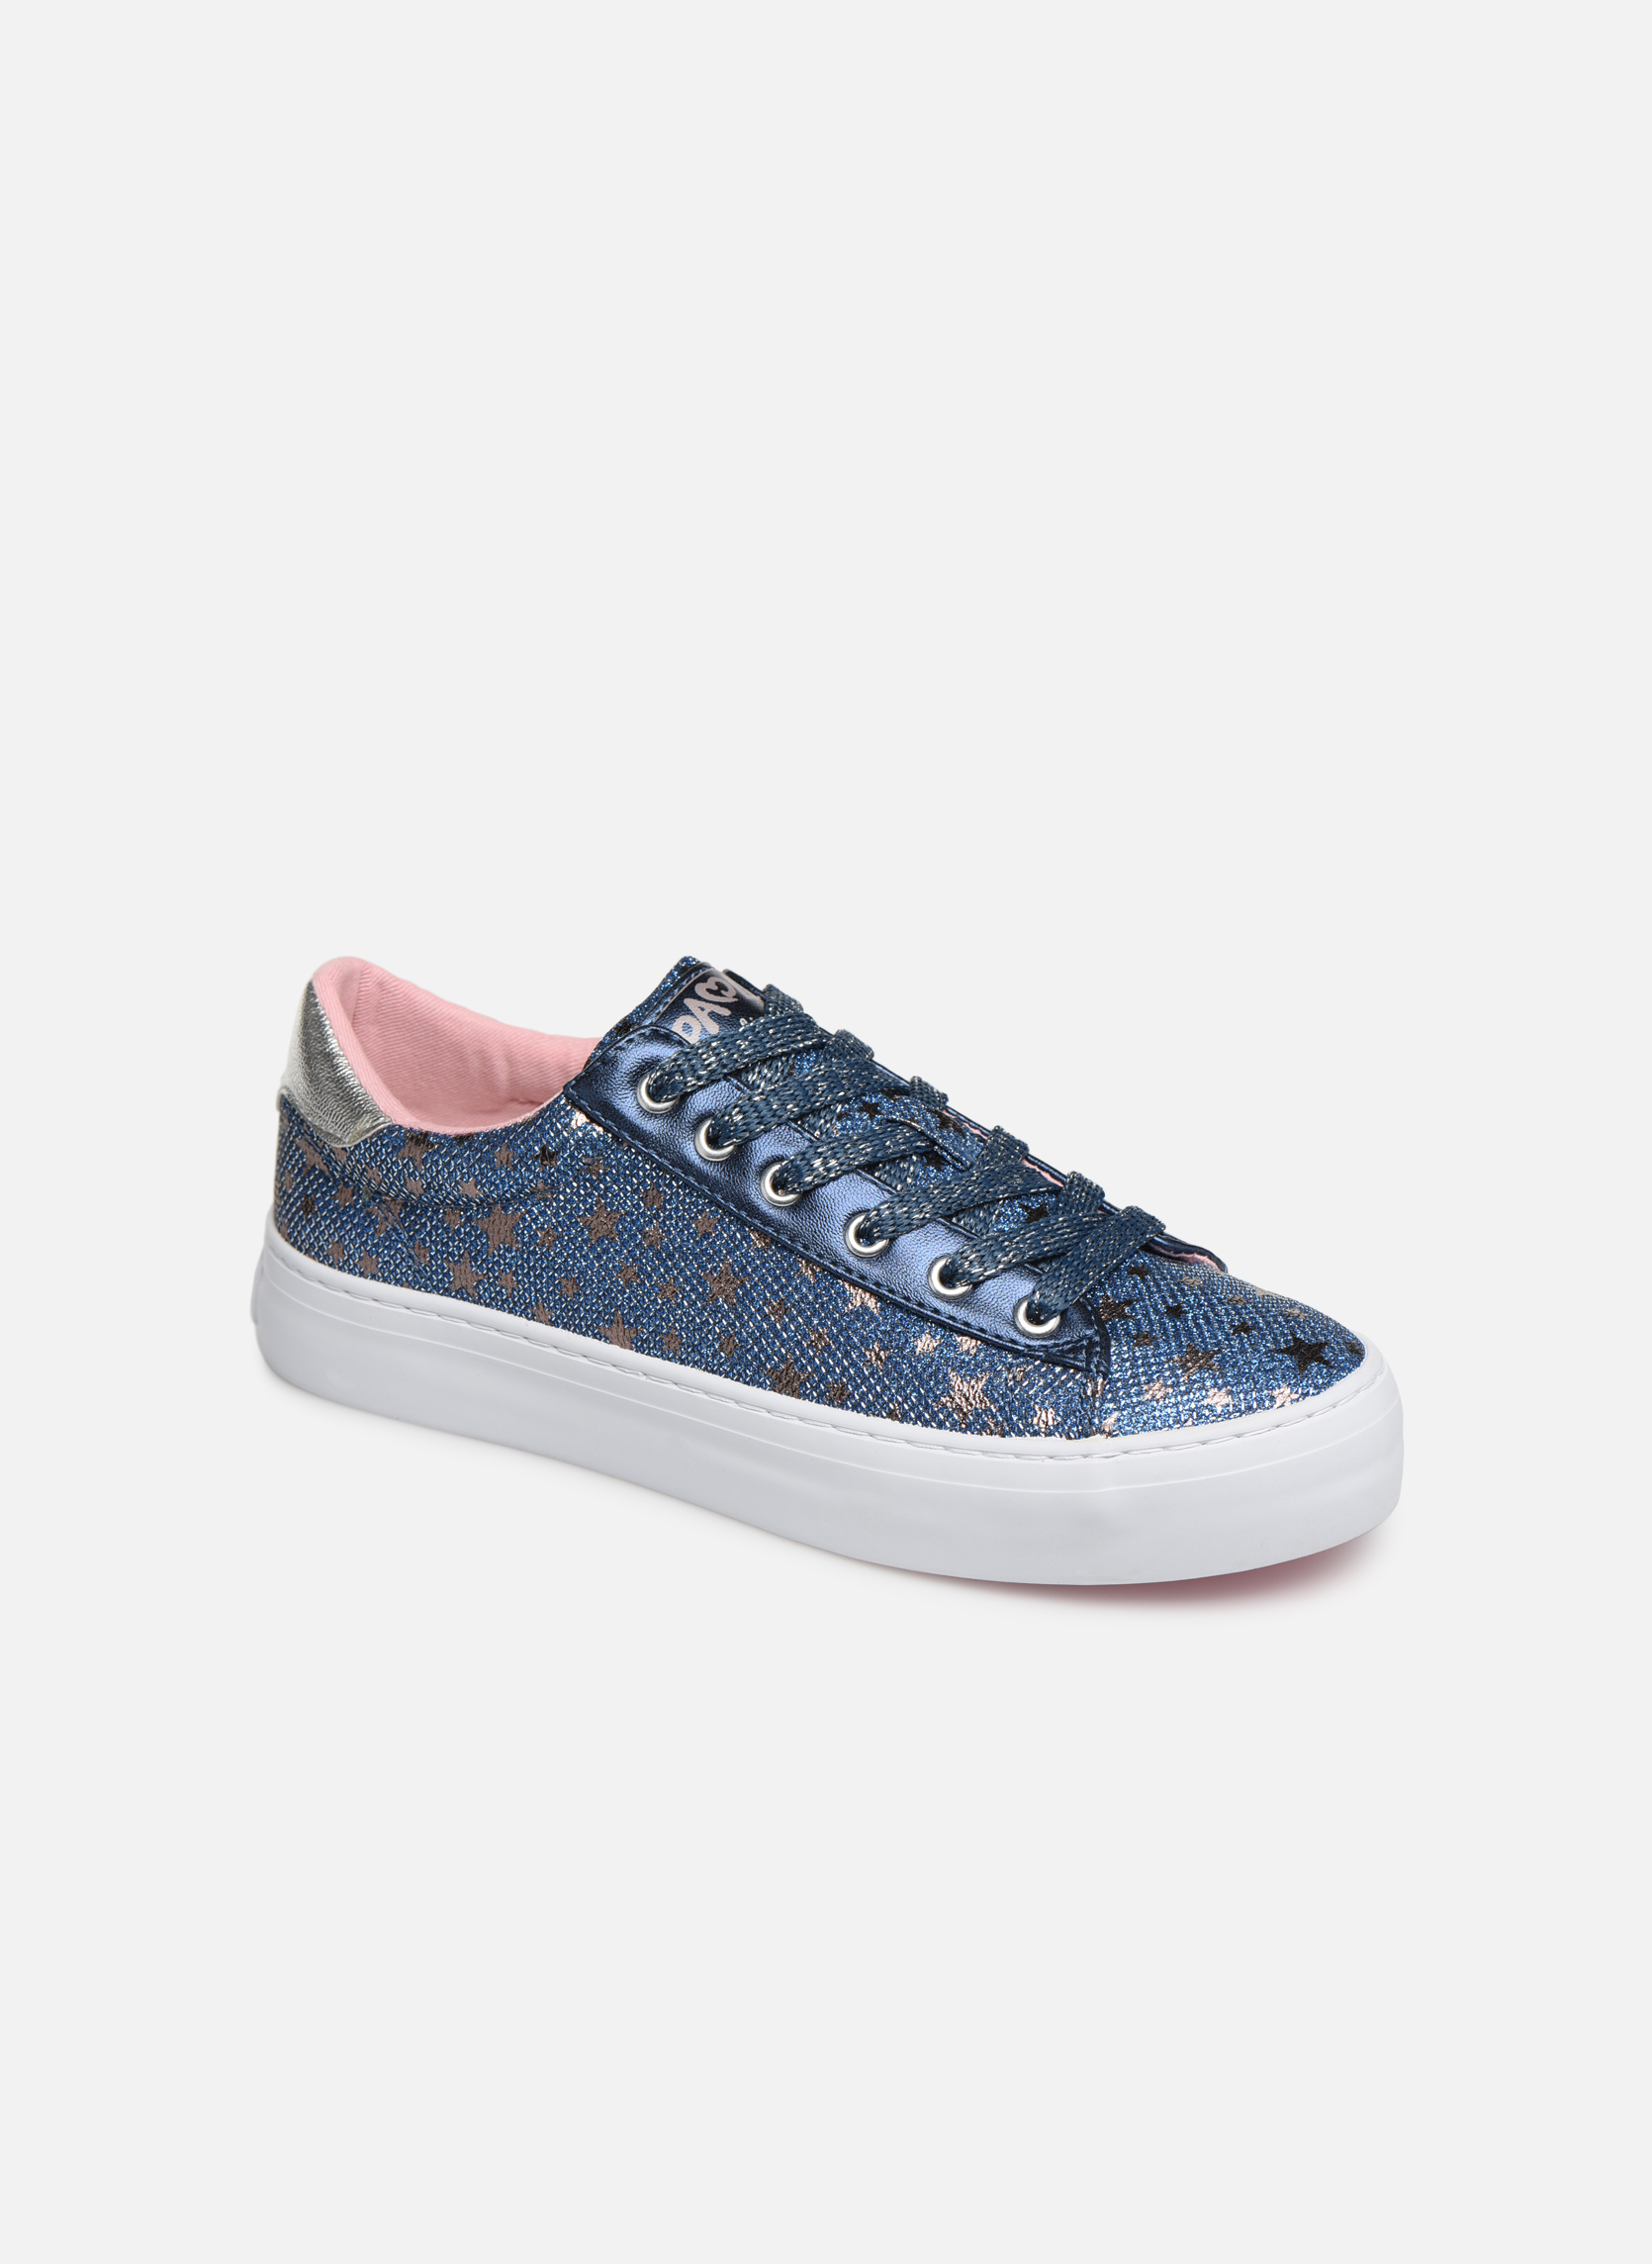 Sneakers Pablosky Blauw